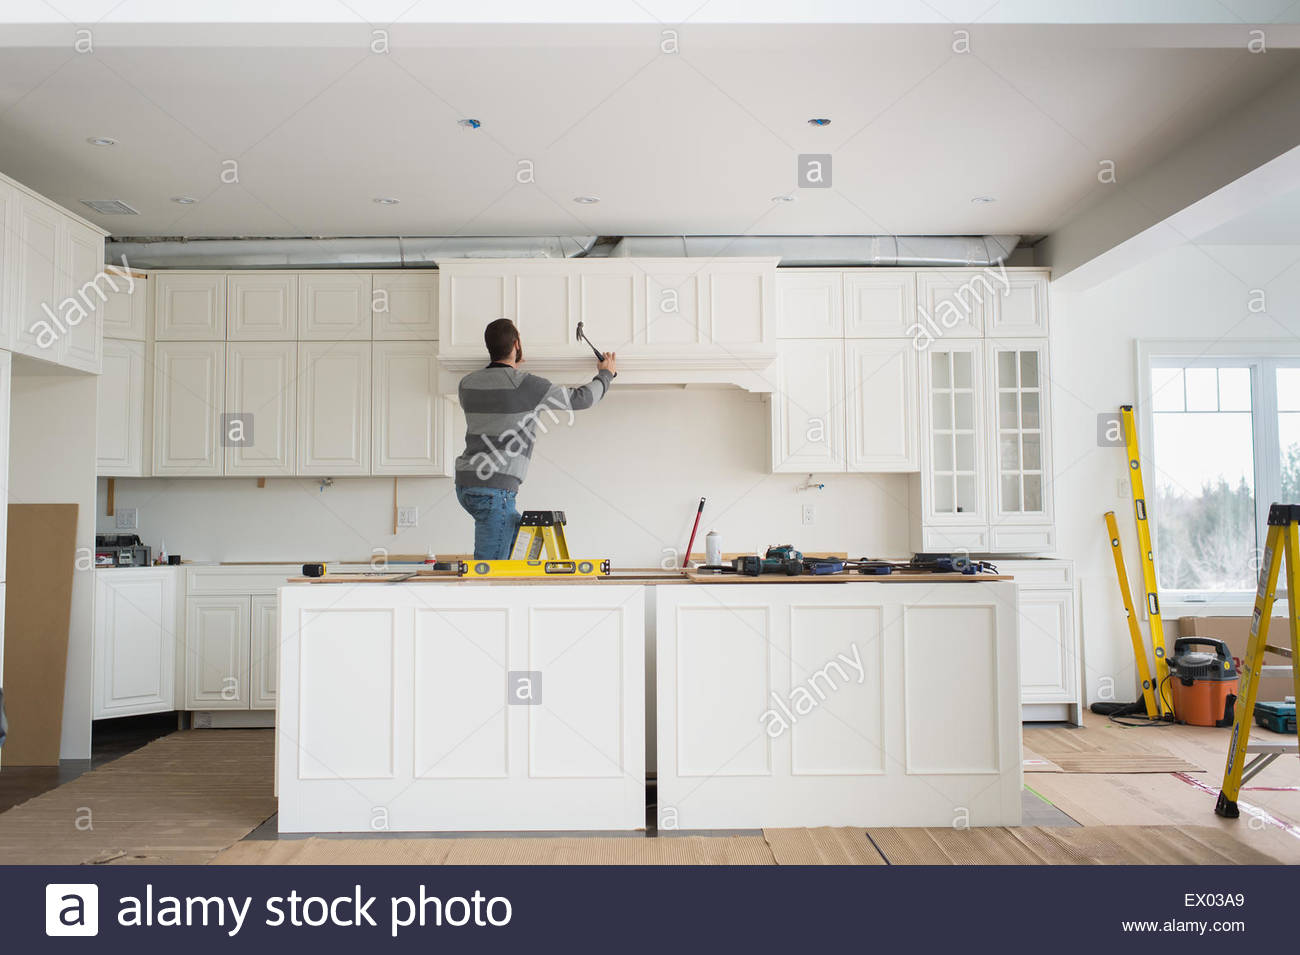 Carpenter installing kitchen cabinet Stock Photo: 84825169 - Alamy